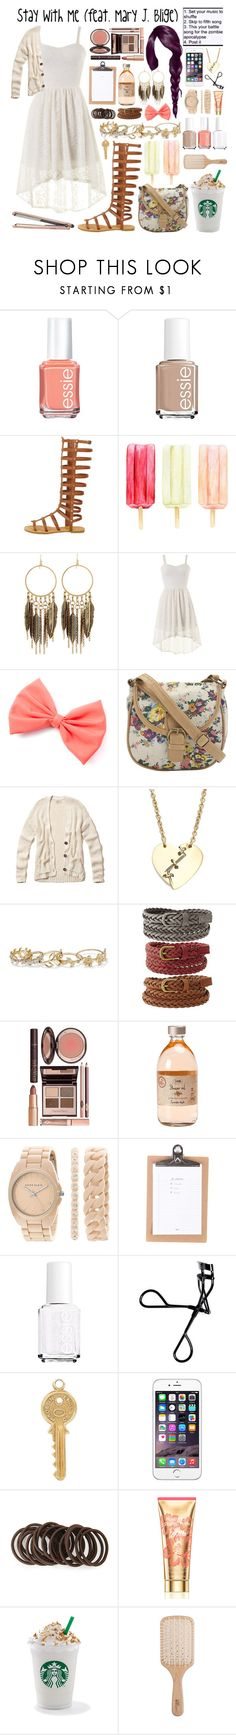 """""""Stay With Me."""" by dyciana ❤ liked on Polyvore featuring Essie, Panacea, Hollister Co., Marc by Marc Jacobs, New York & Company, Charlotte Russe, Charlotte Tilbury, Anne Klein, Bobbi Brown Cosmetics and Annina Vogel"""